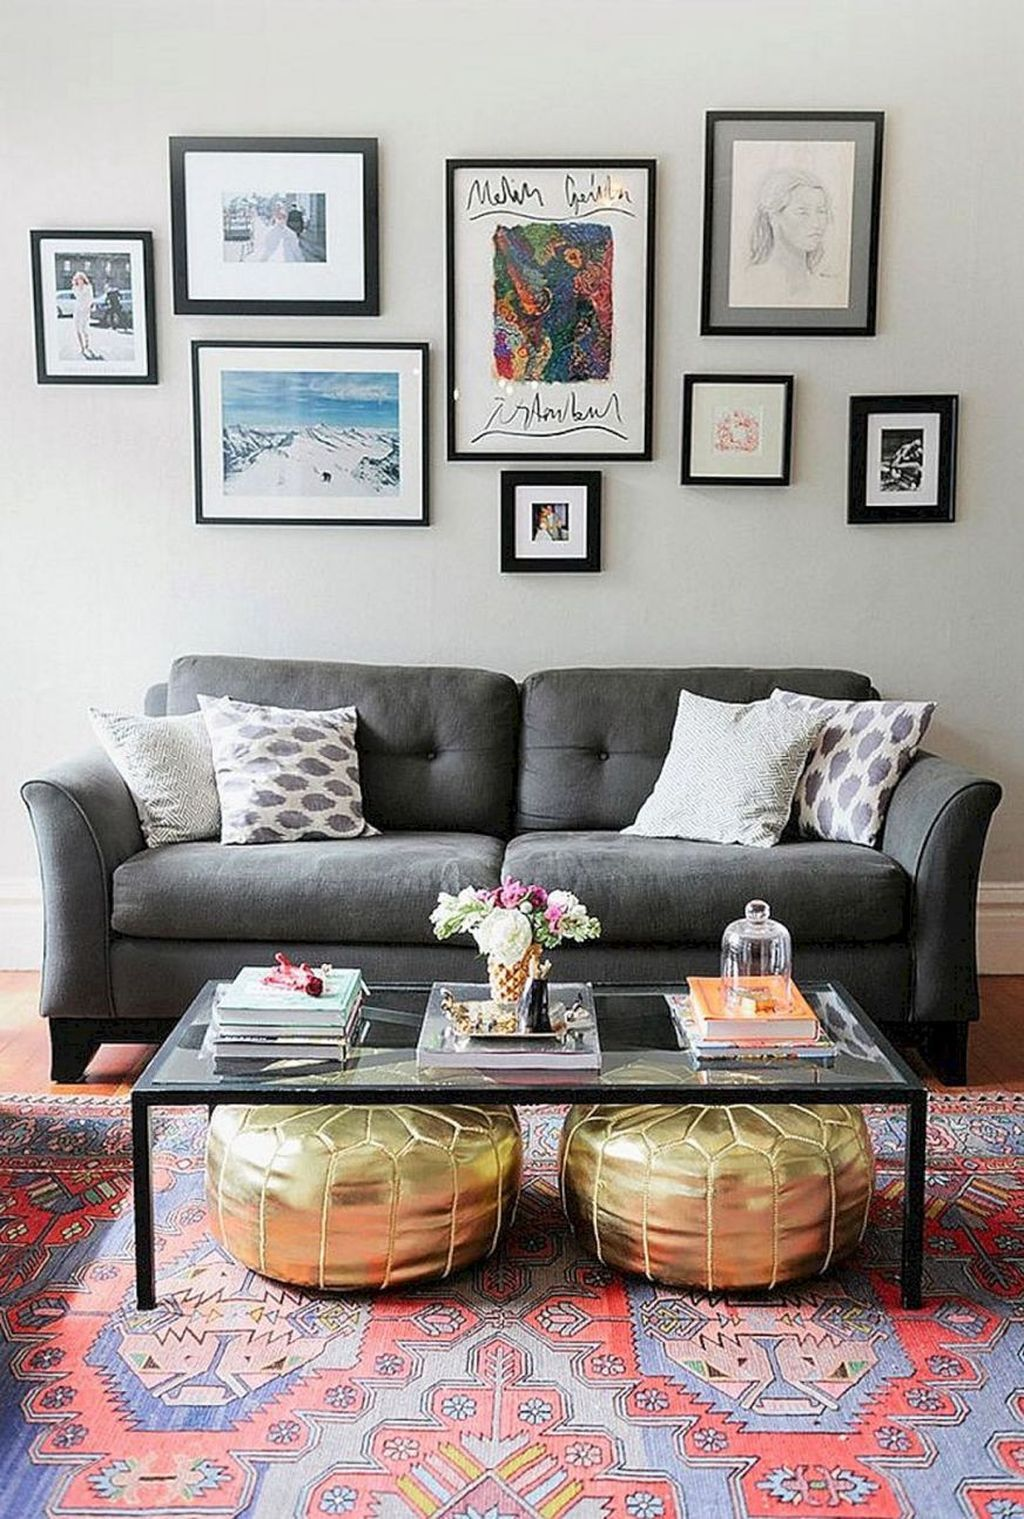 92 Cozy Studio Apartment Decoration Ideas on a Budget | Cozy studio ...